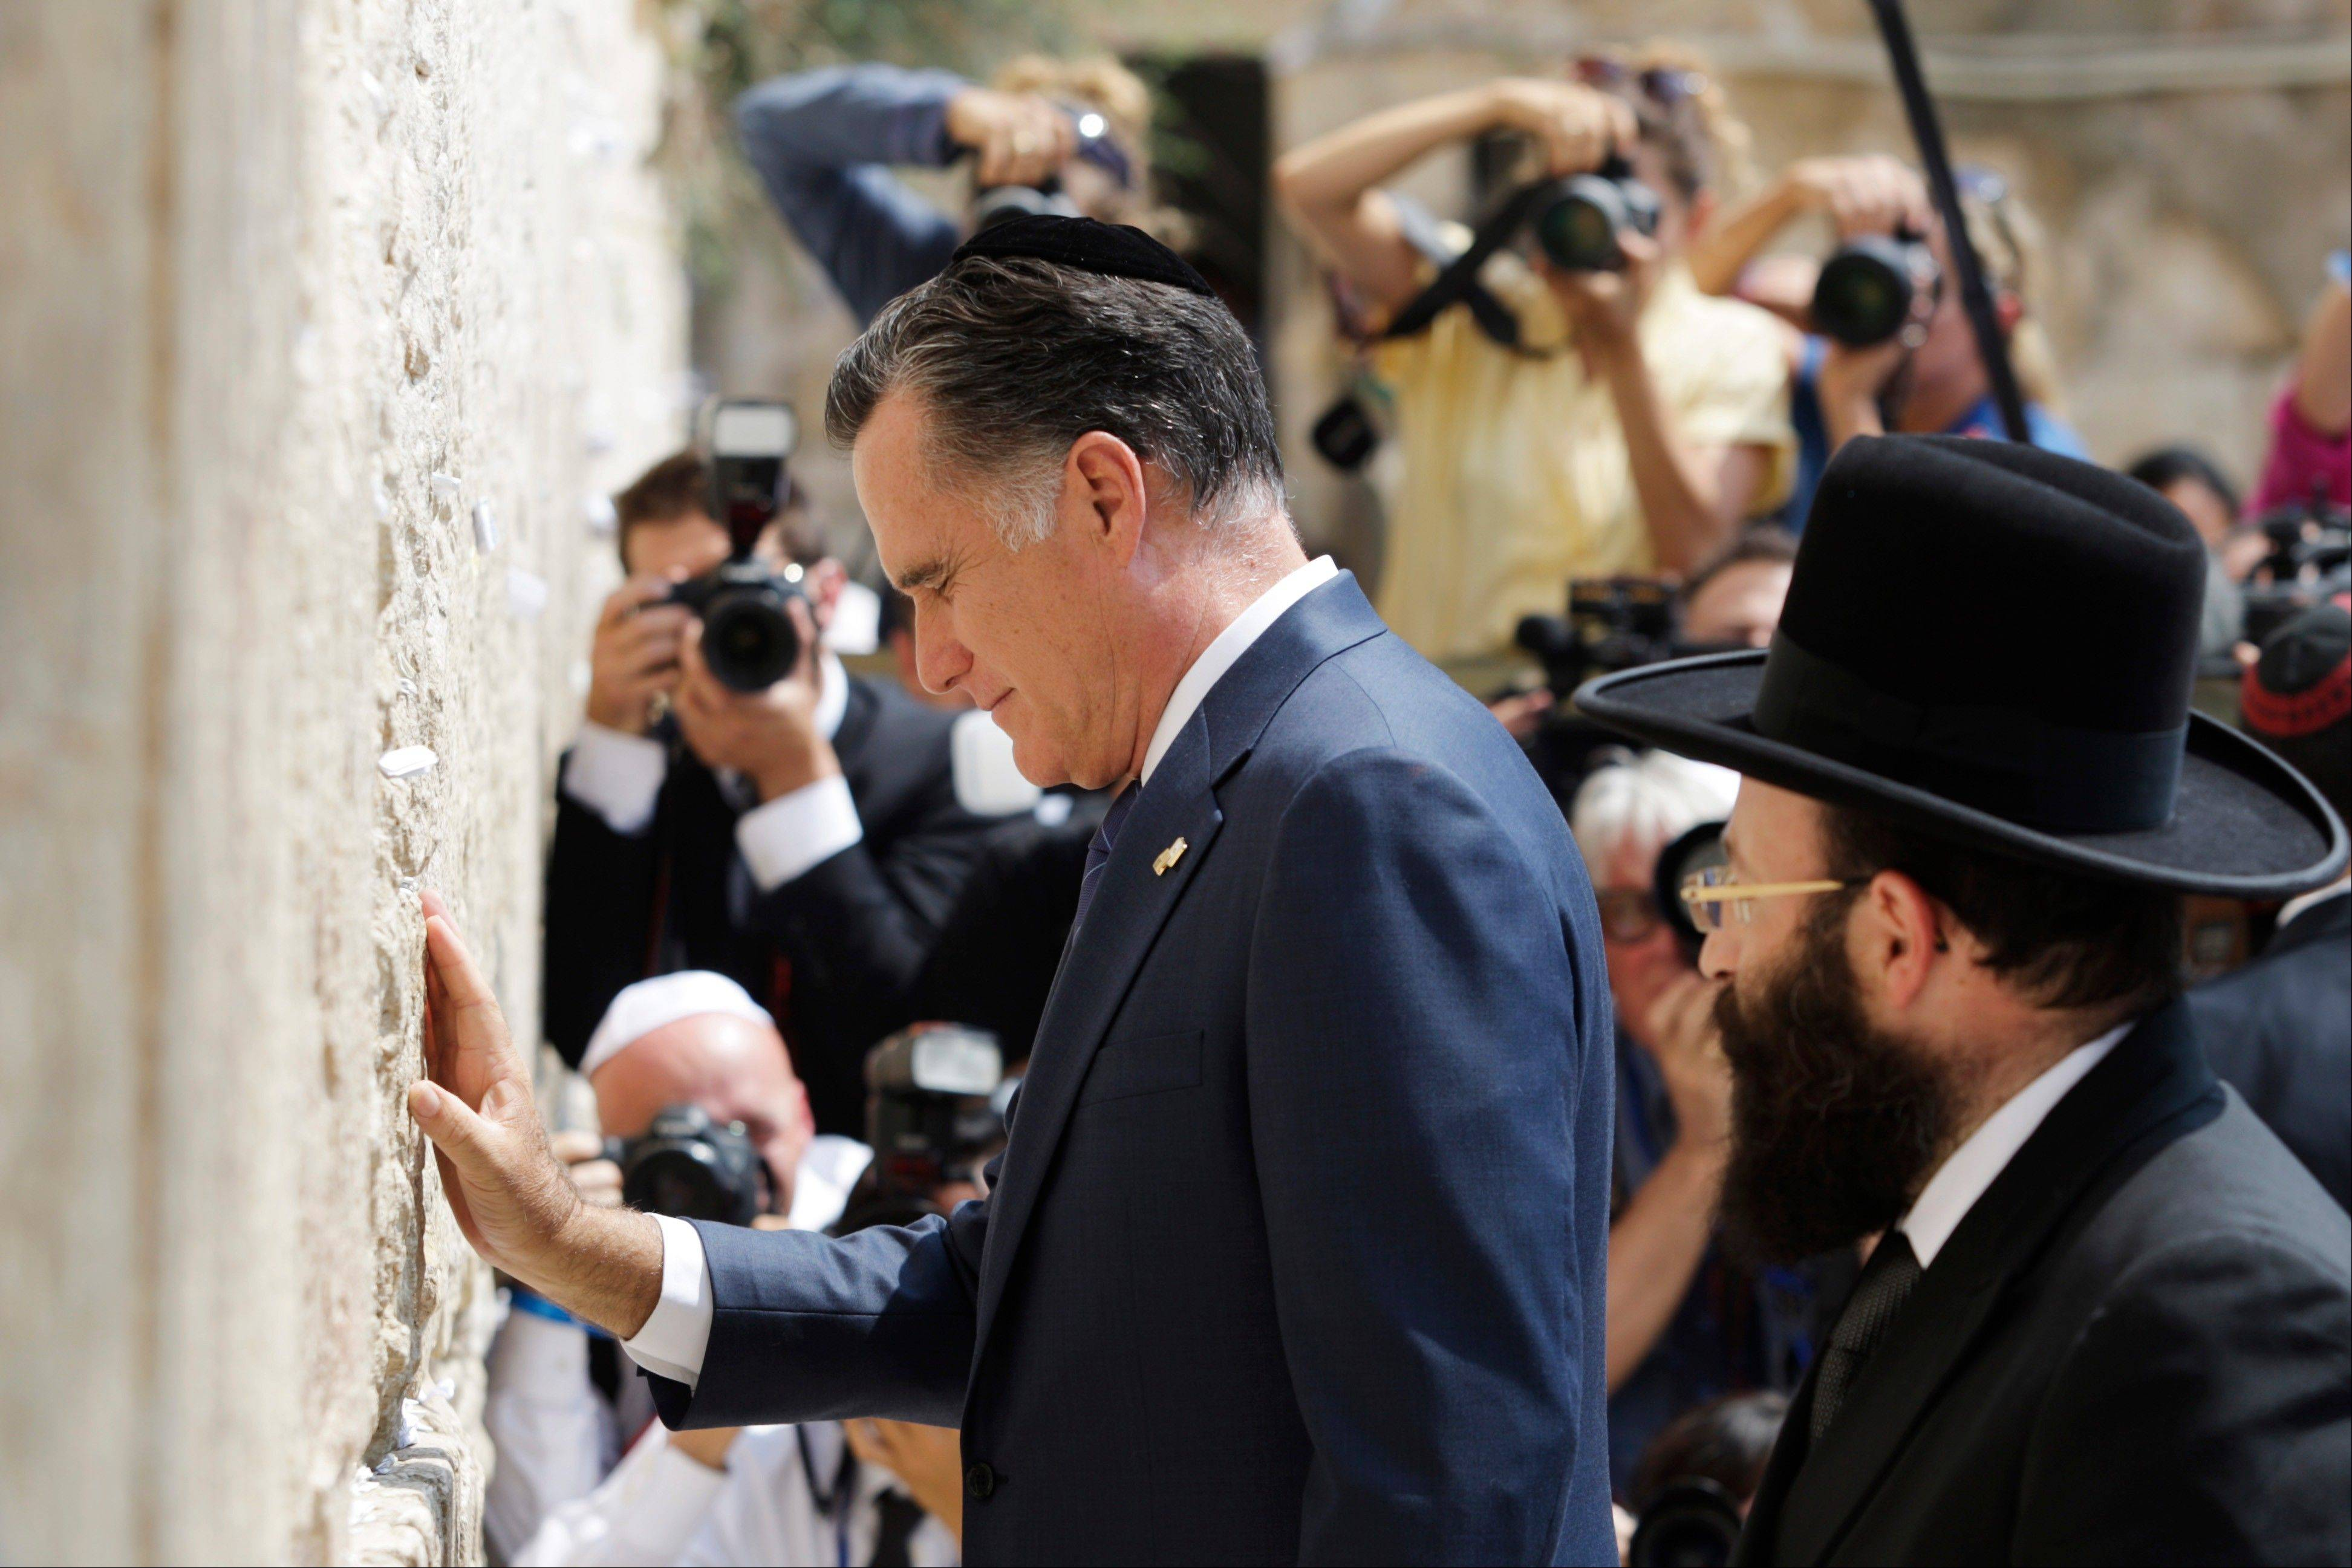 Republican presidential candidate and former Massachusetts Gov. Mitt Romney pauses next to the Western Wall, in Jerusalem, Sunday, July 29, 2012.